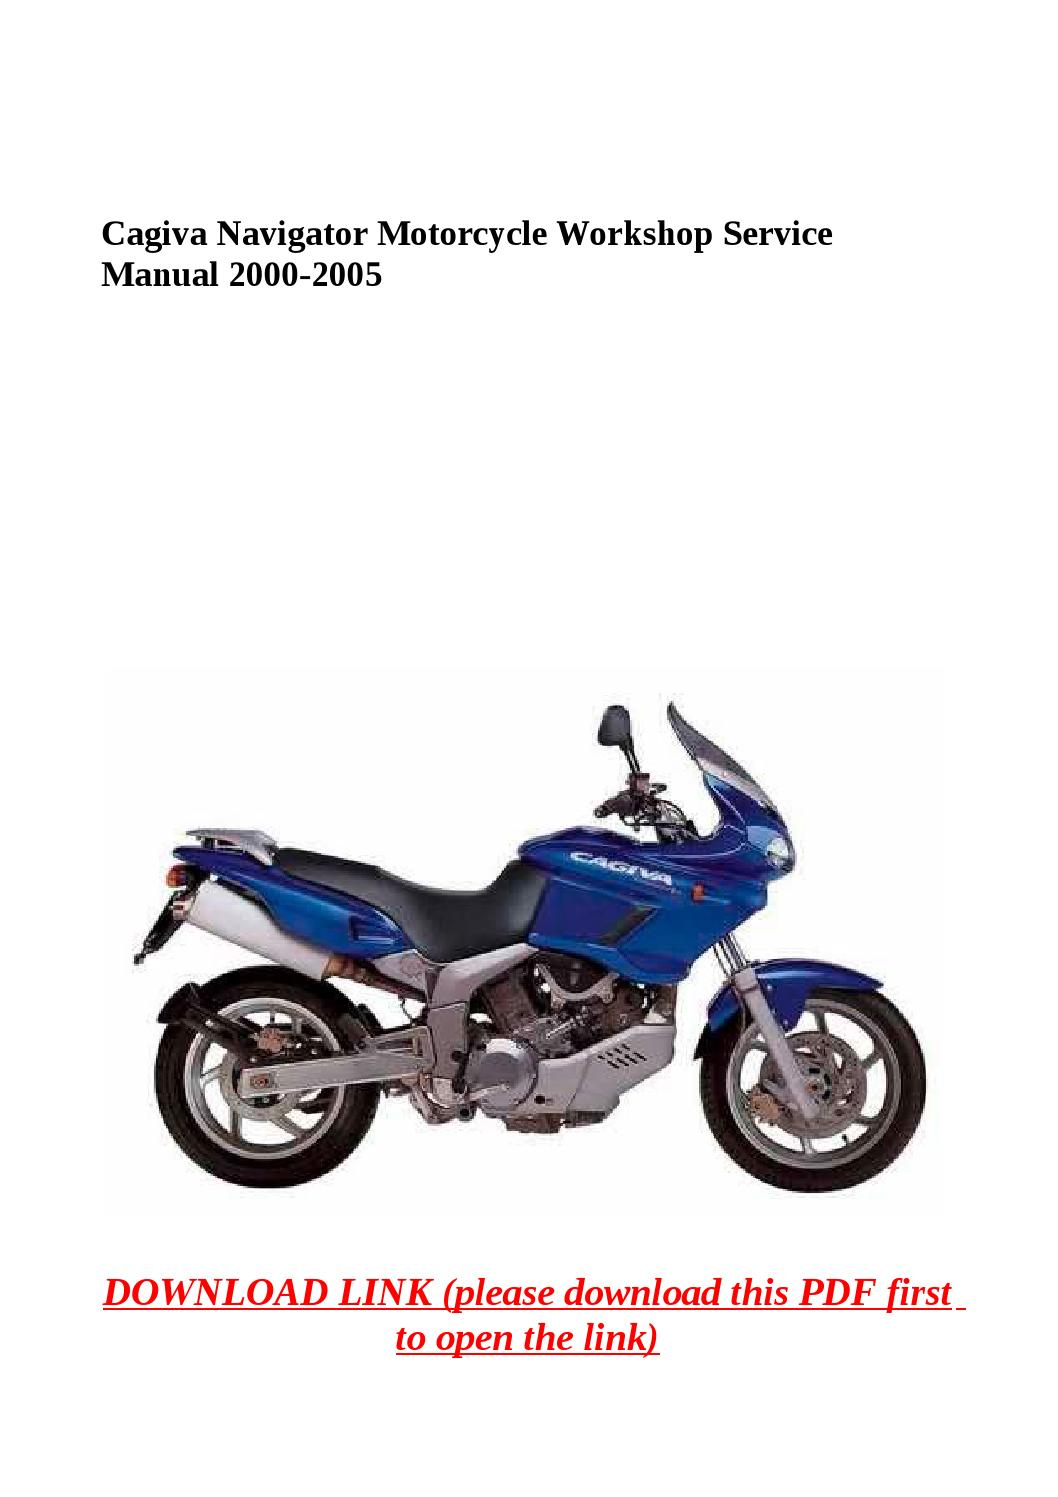 Cagiva navigator motorcycle workshop service manual 2000 2005 by yghj -  issuu